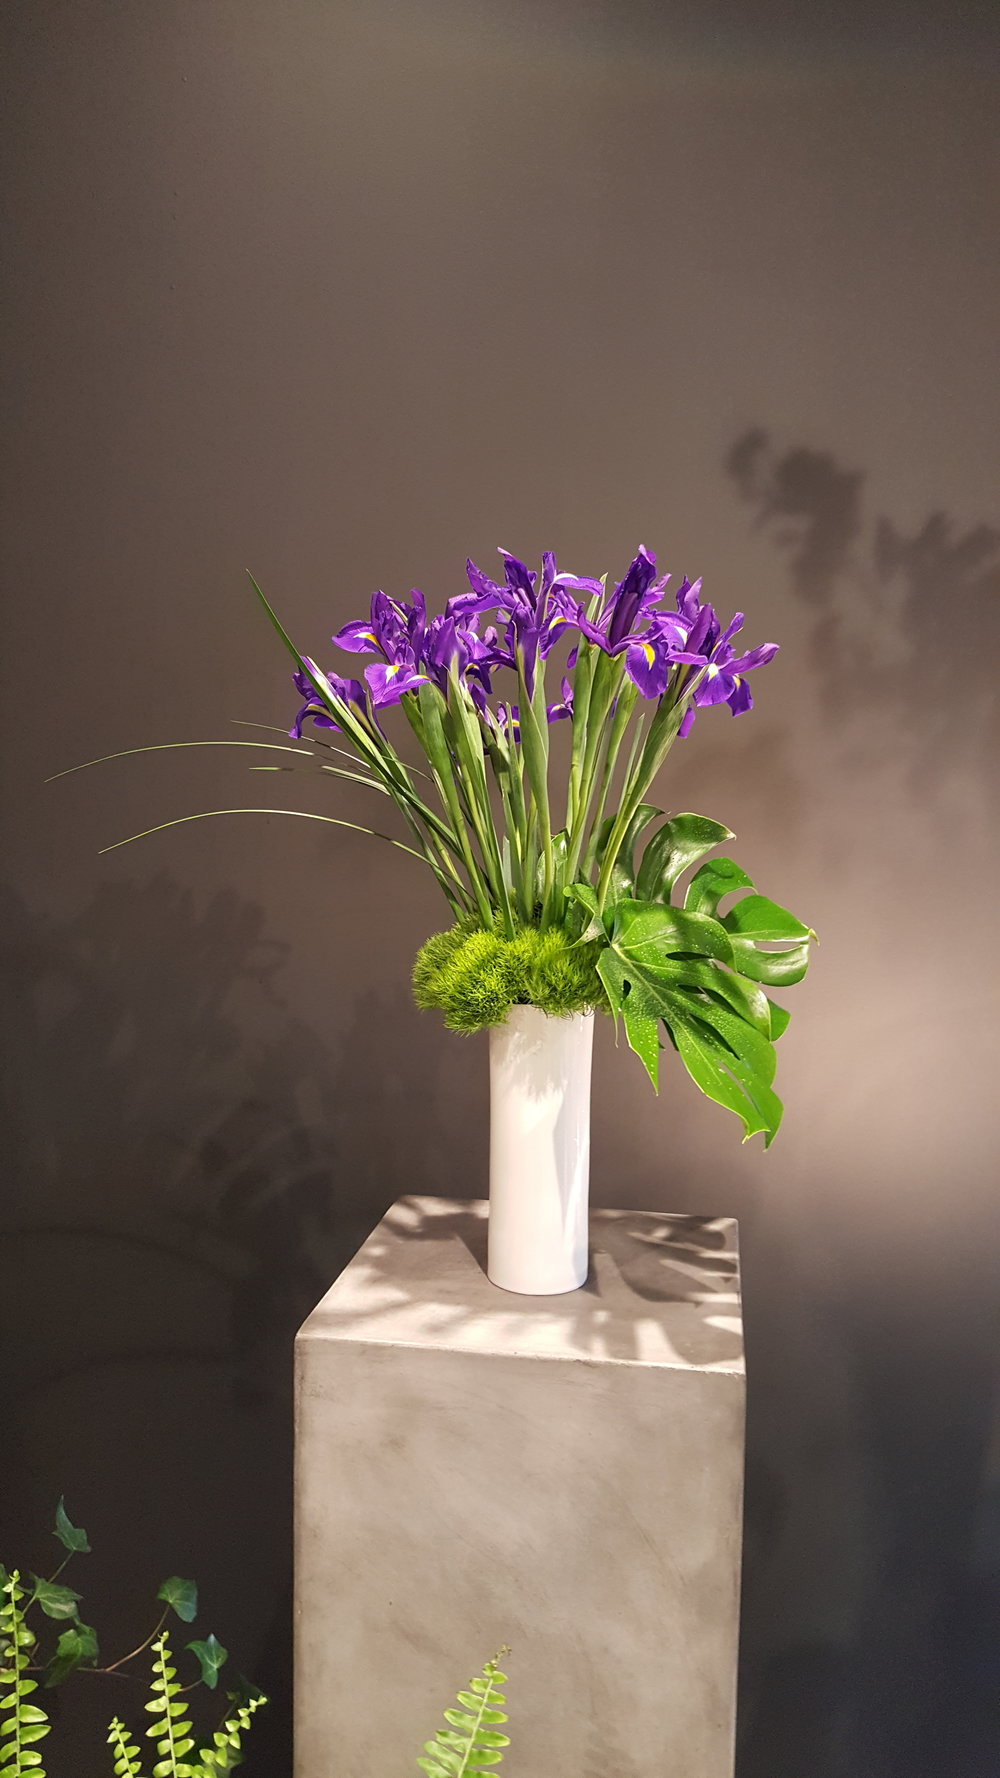 Bold purple irises in a simple vase designed by Bouquets & Beyonds